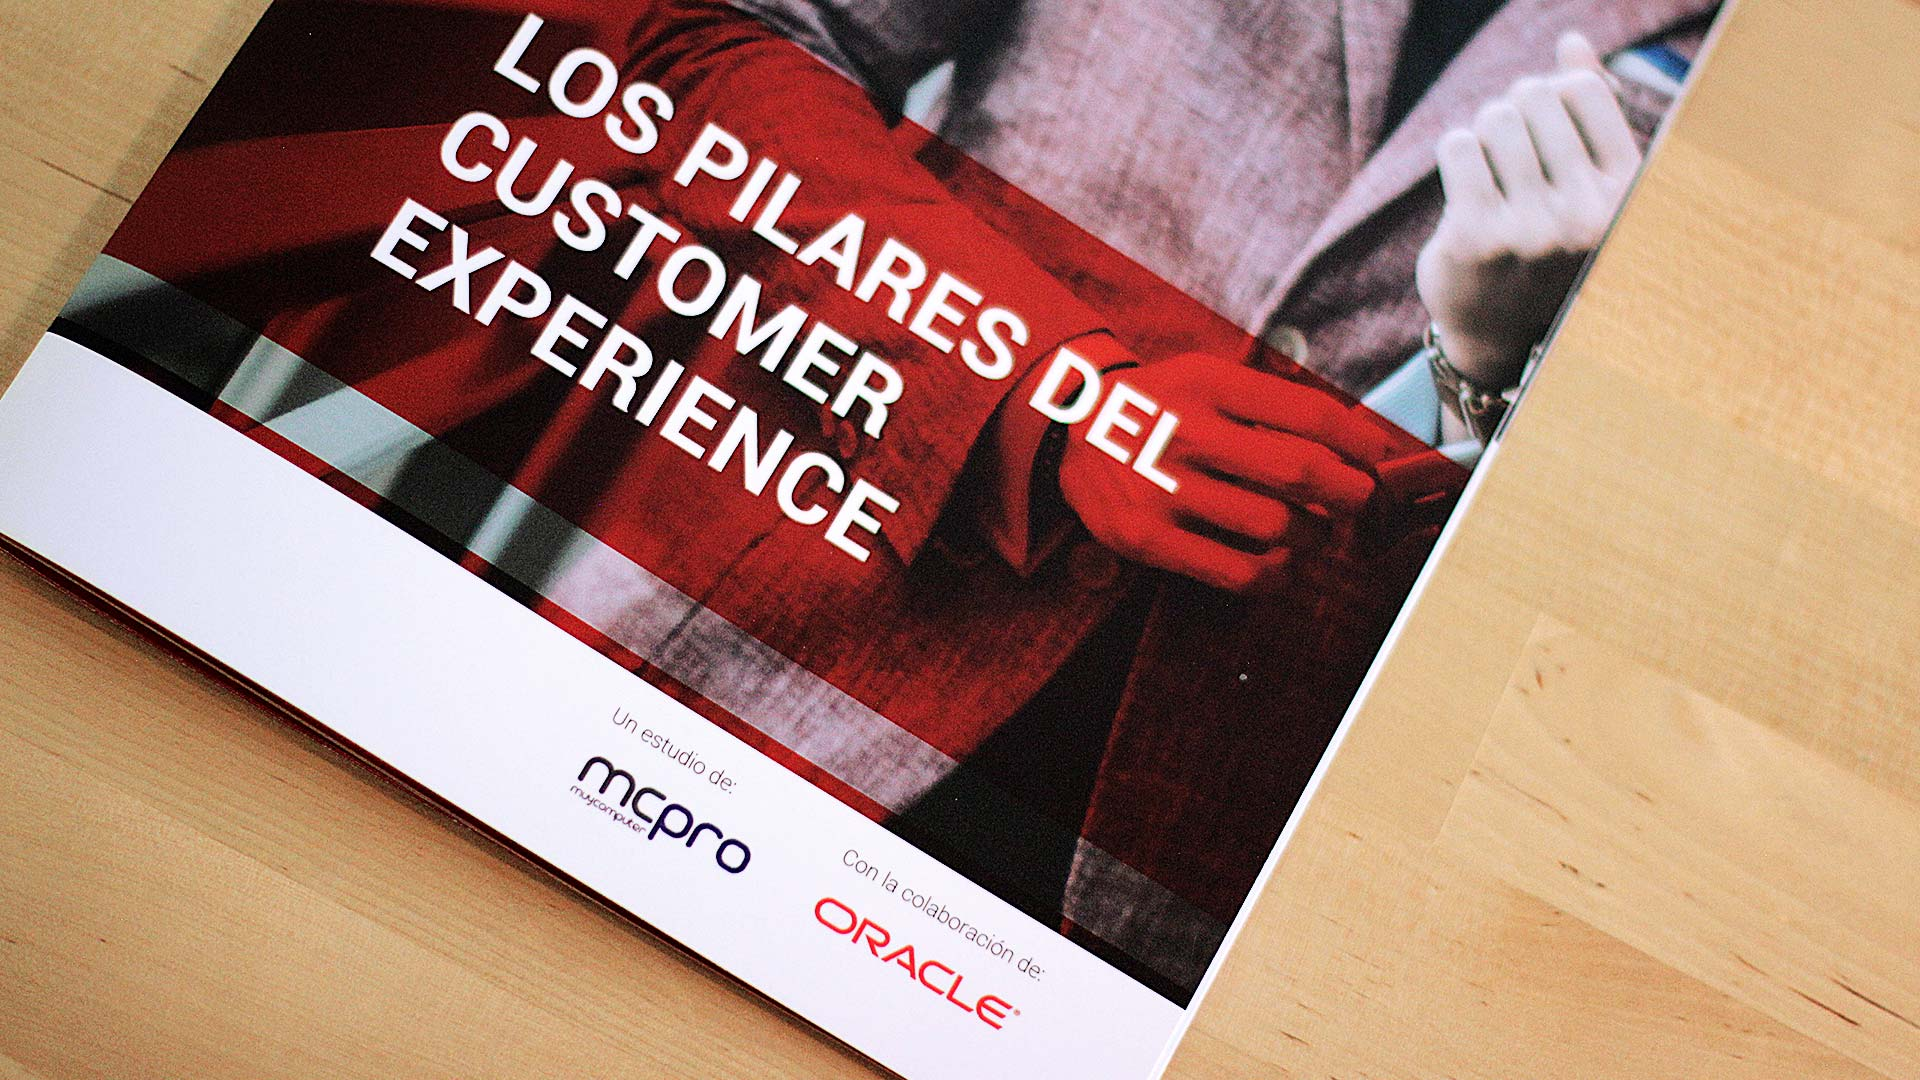 oracle-content-marketing-pilares-customer-experience-2017-31